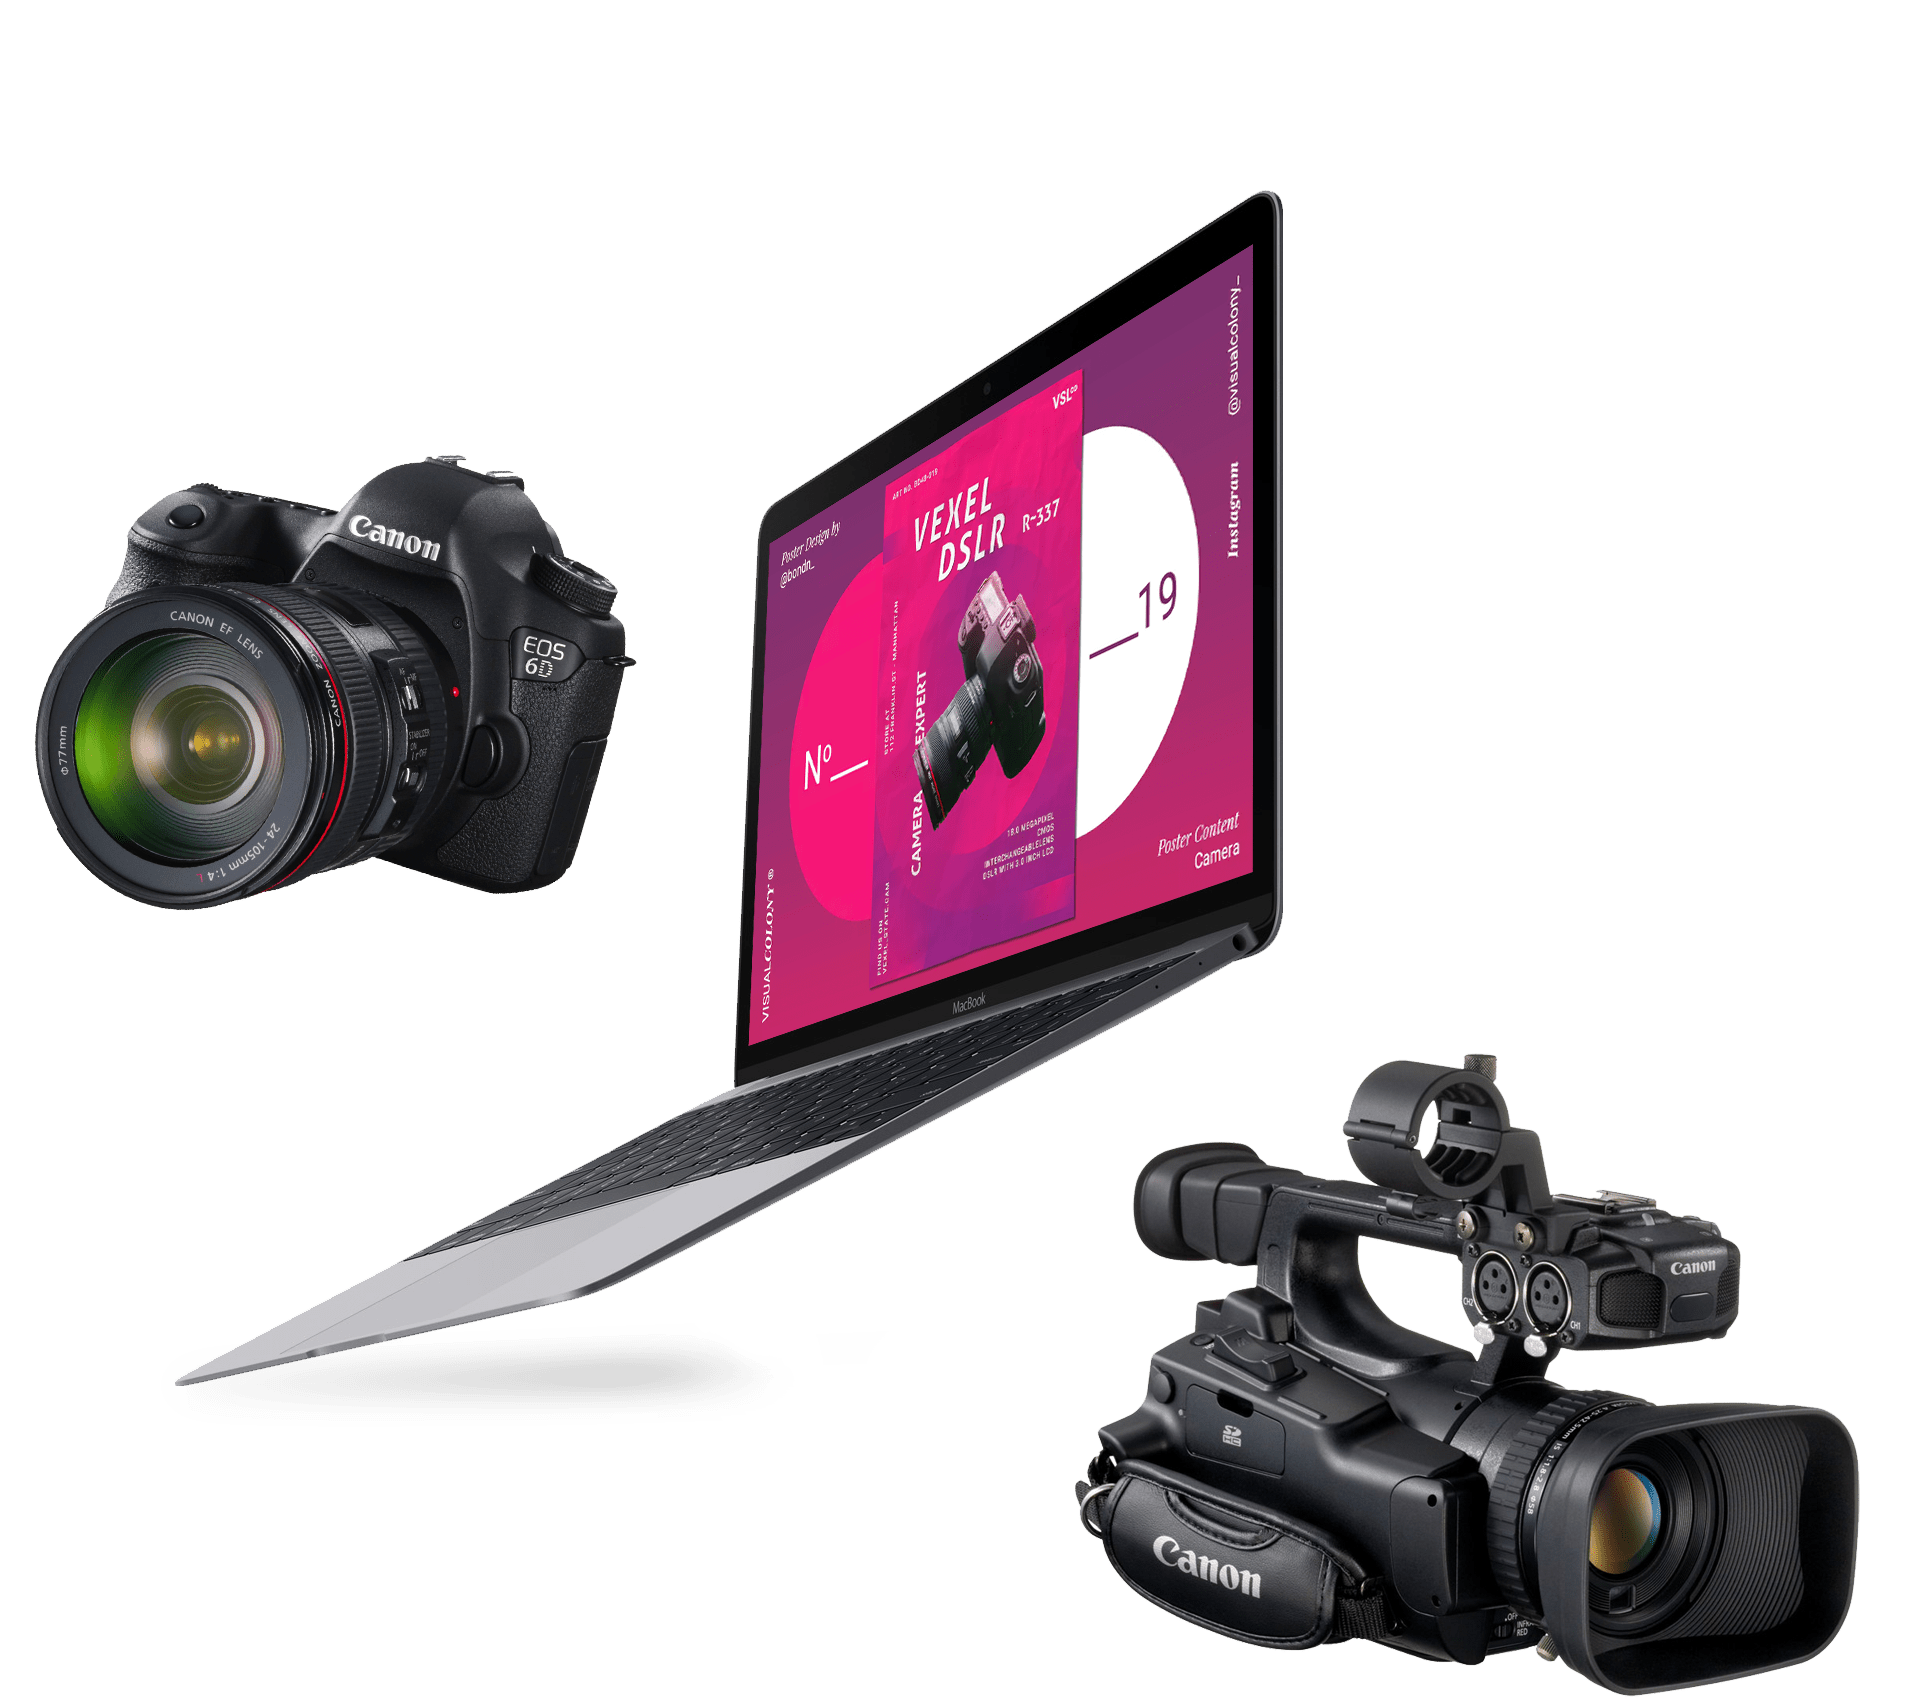 camera and laptop image